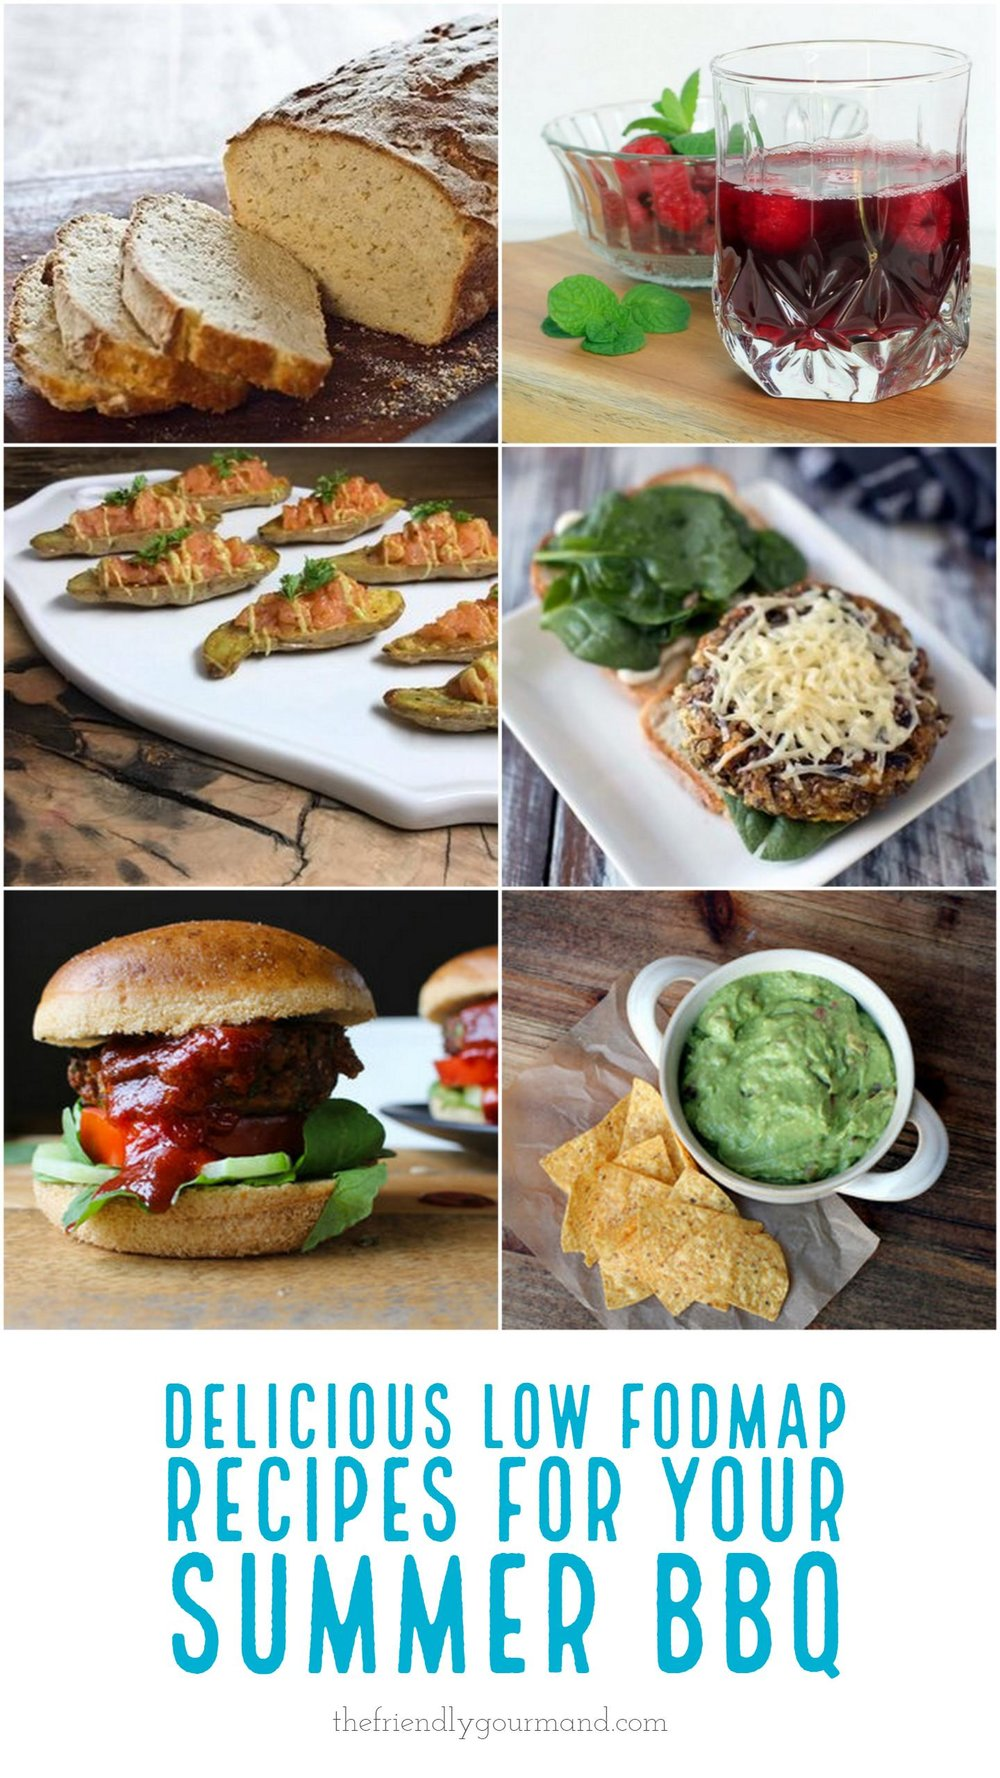 Delicious Low FODMAP Recipes for your Summer BBQ | The Friendly Gourmand | #lowfodmap #fodmapfriendly #glutenfree #summer #bbq #barbeque